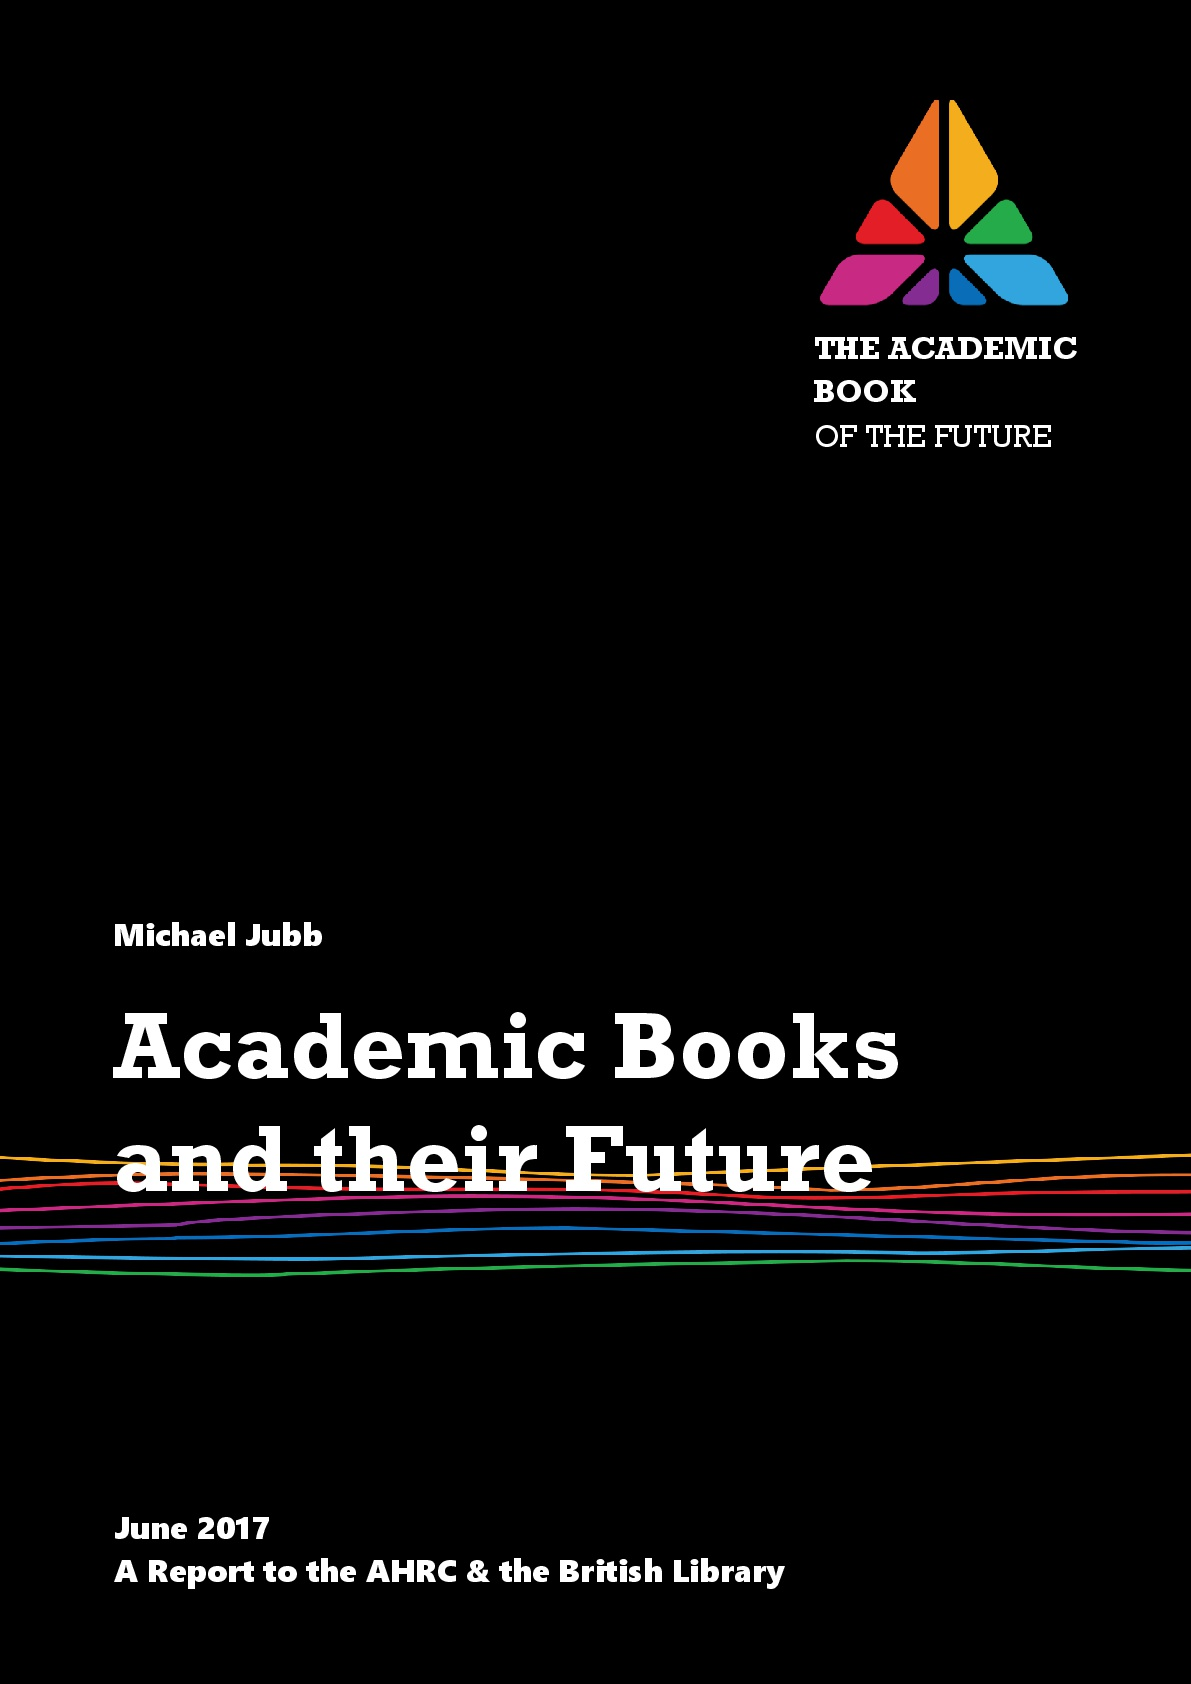 Academic Books and their Future 2017